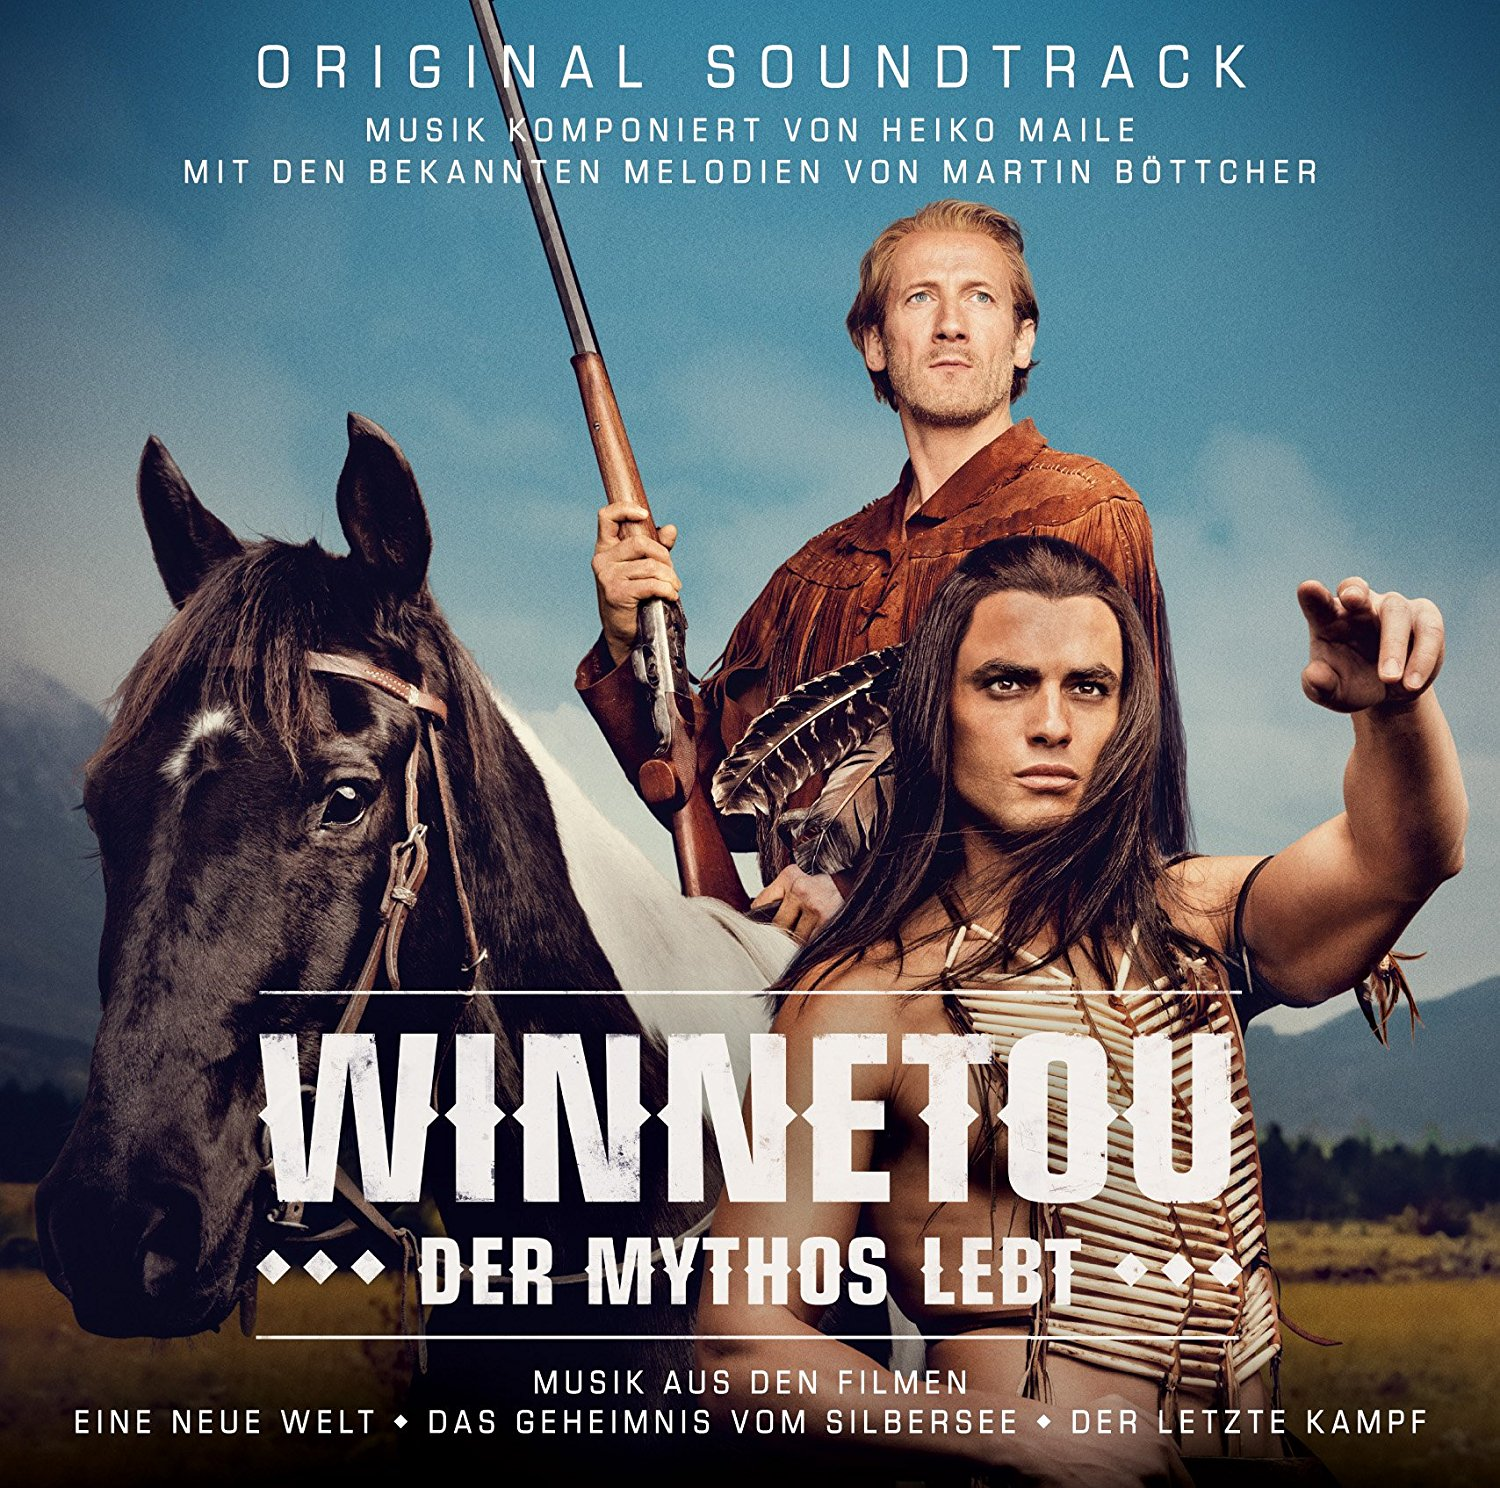 ost 12 16 Winnetou neu 3